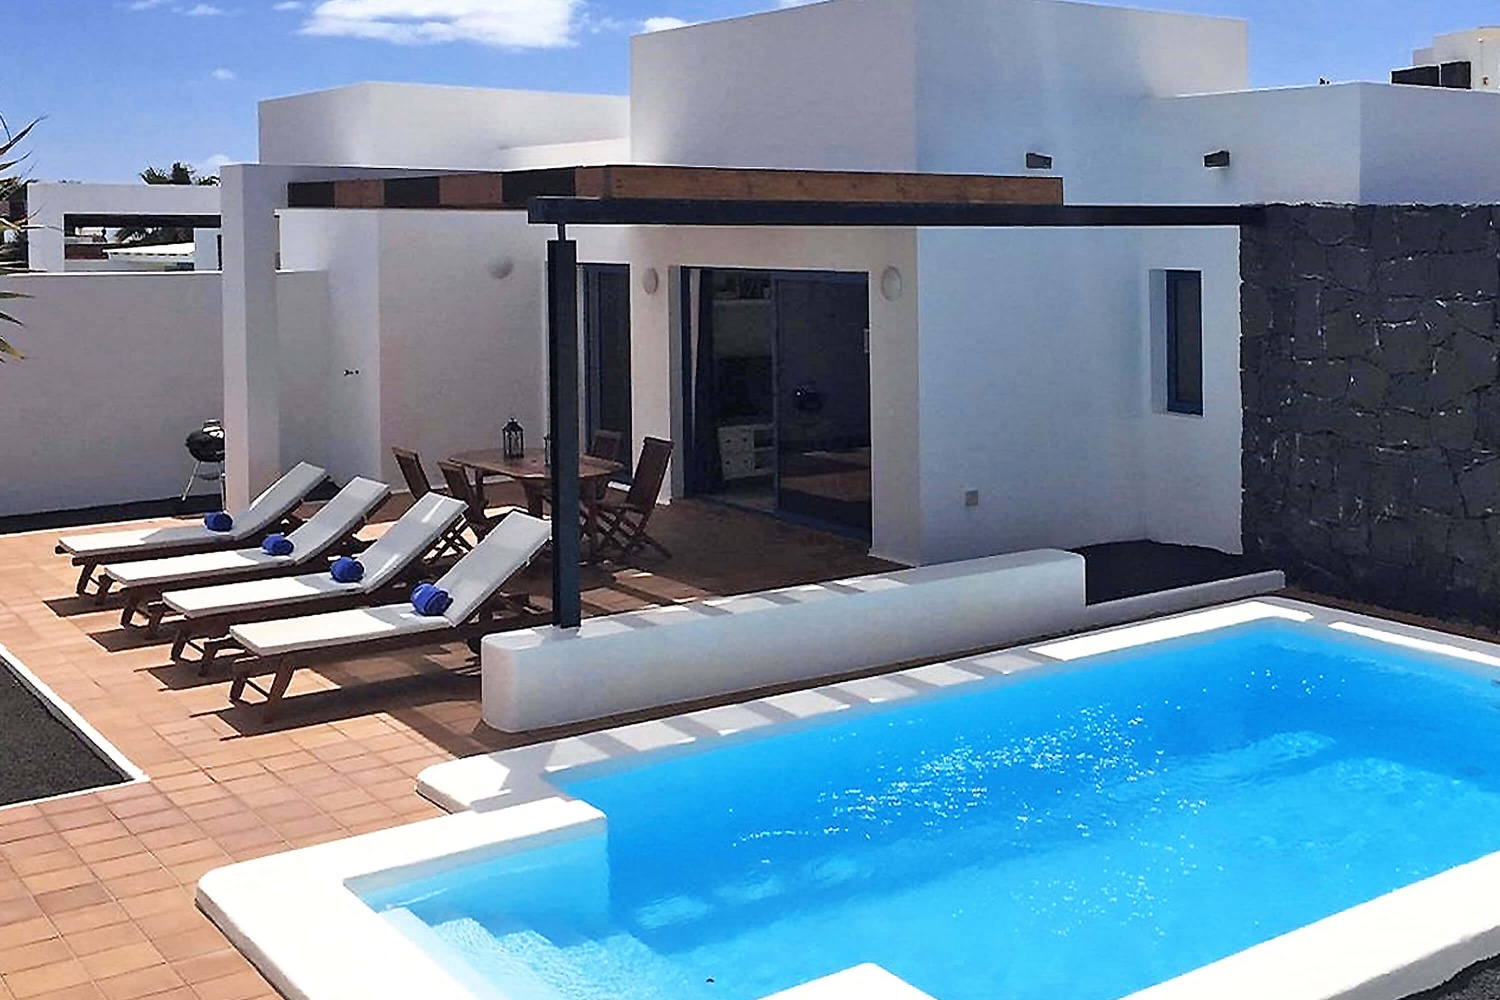 Cozy 2 bedroom villa, ideal for resting, with private heatable pool, air conditioning and Wi